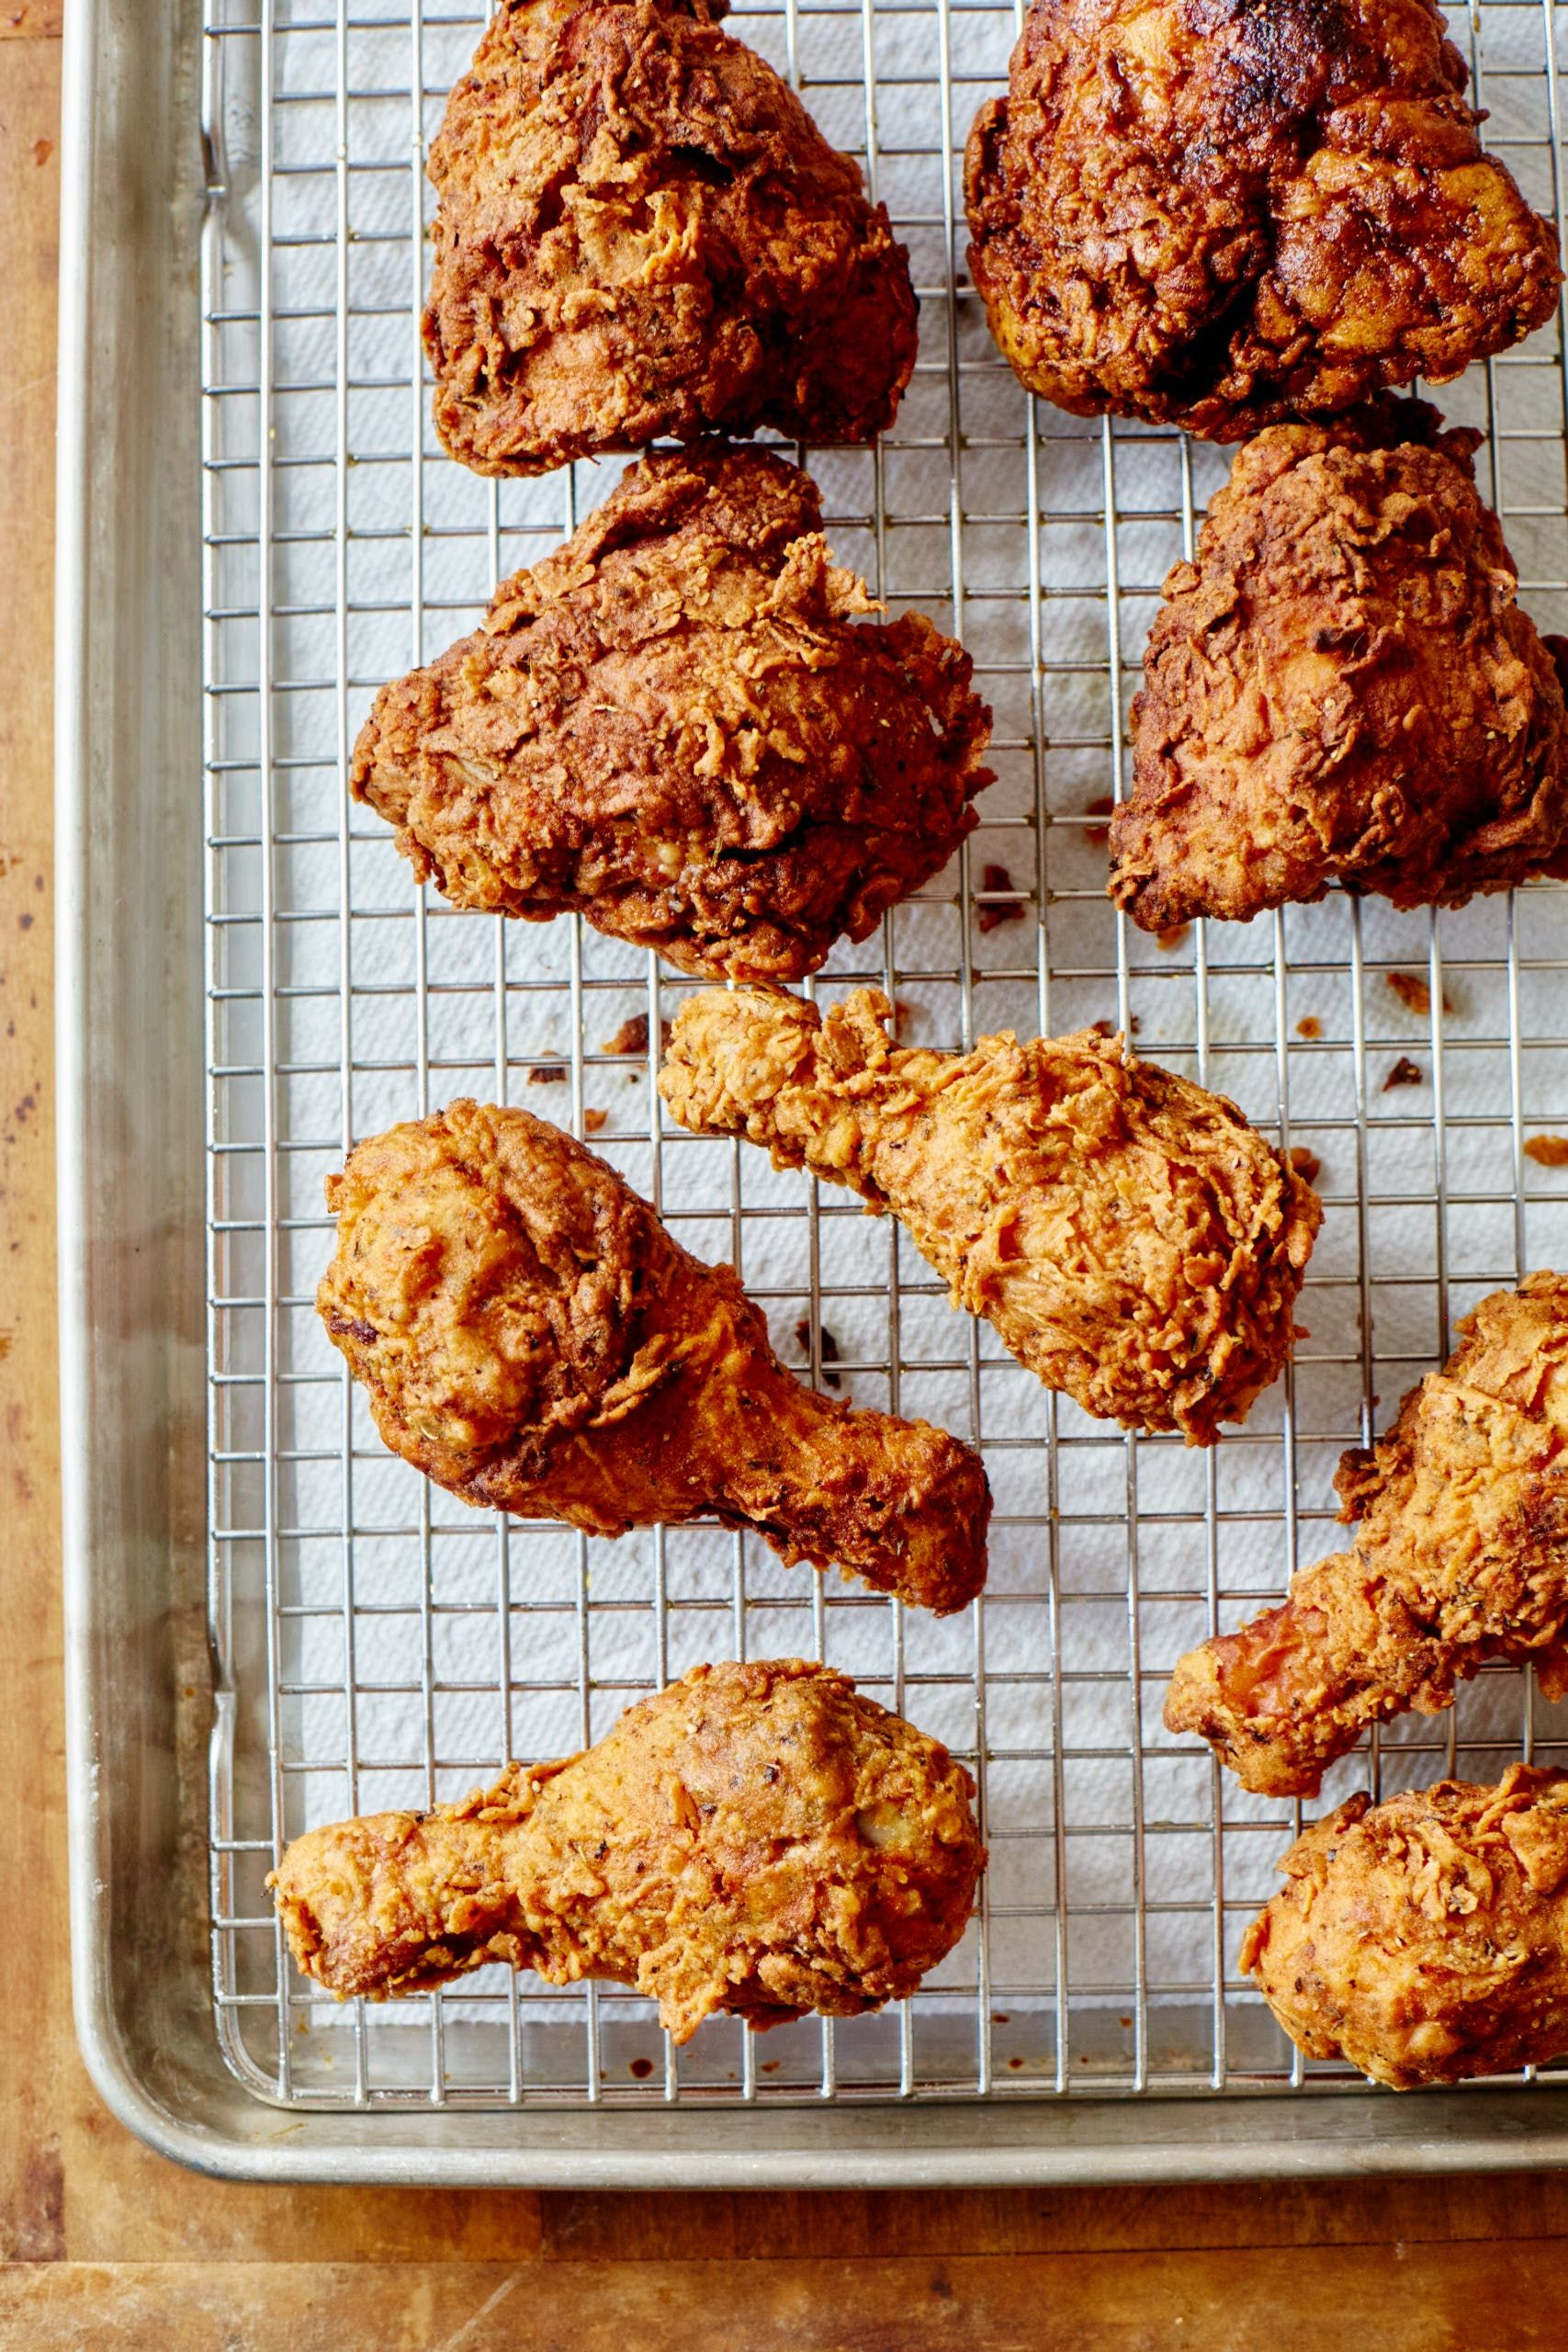 How To Make Crispy, Juicy Fried Chicken (that's Better Than Kfc)